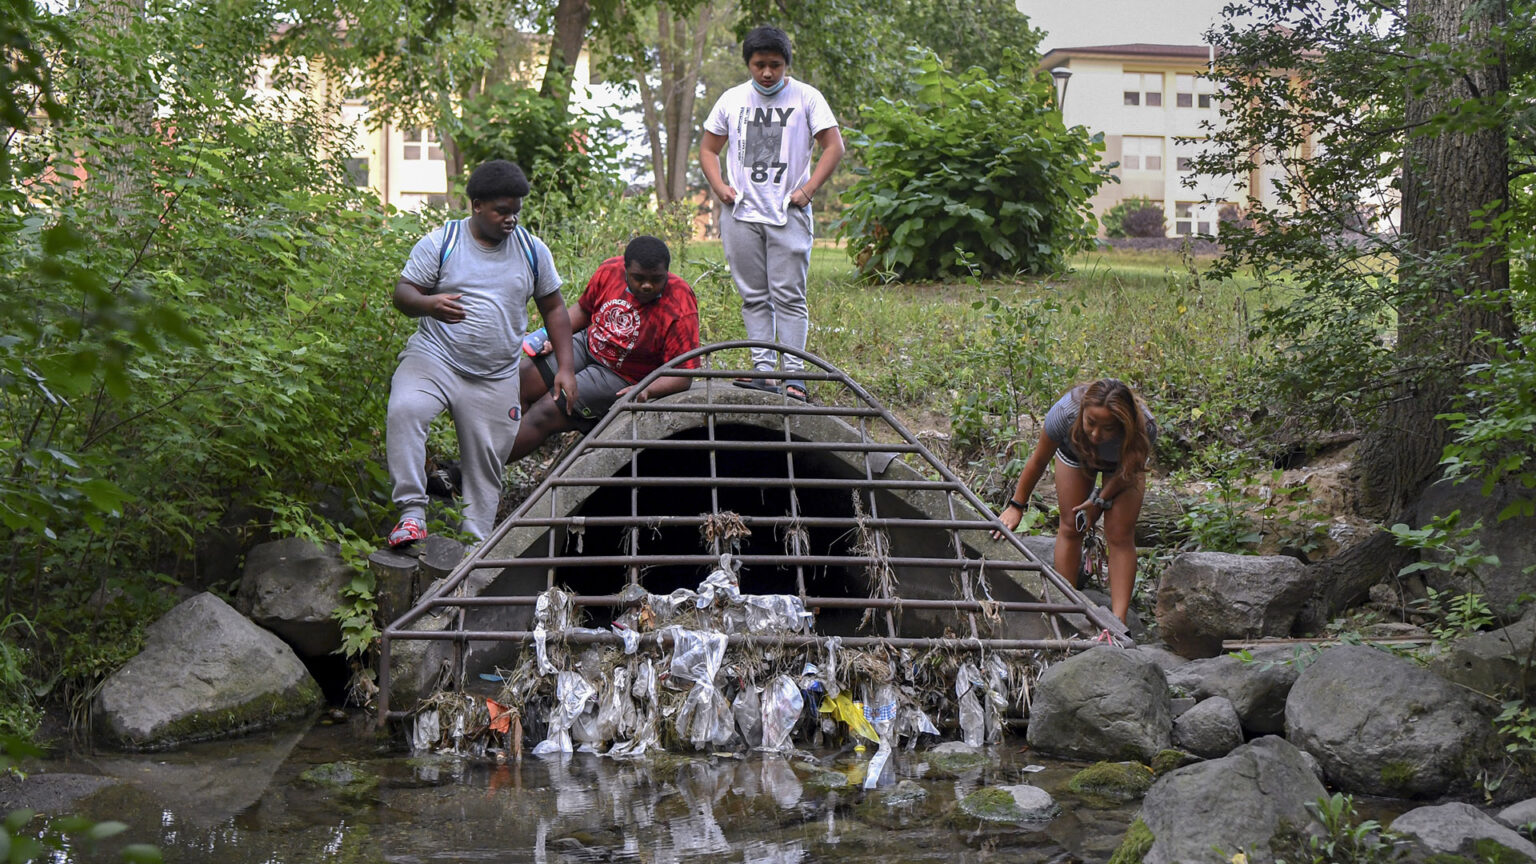 Four children stand on a concrete culvert mouth with a metal grille covered with plastic garbage on the edge of a creek.